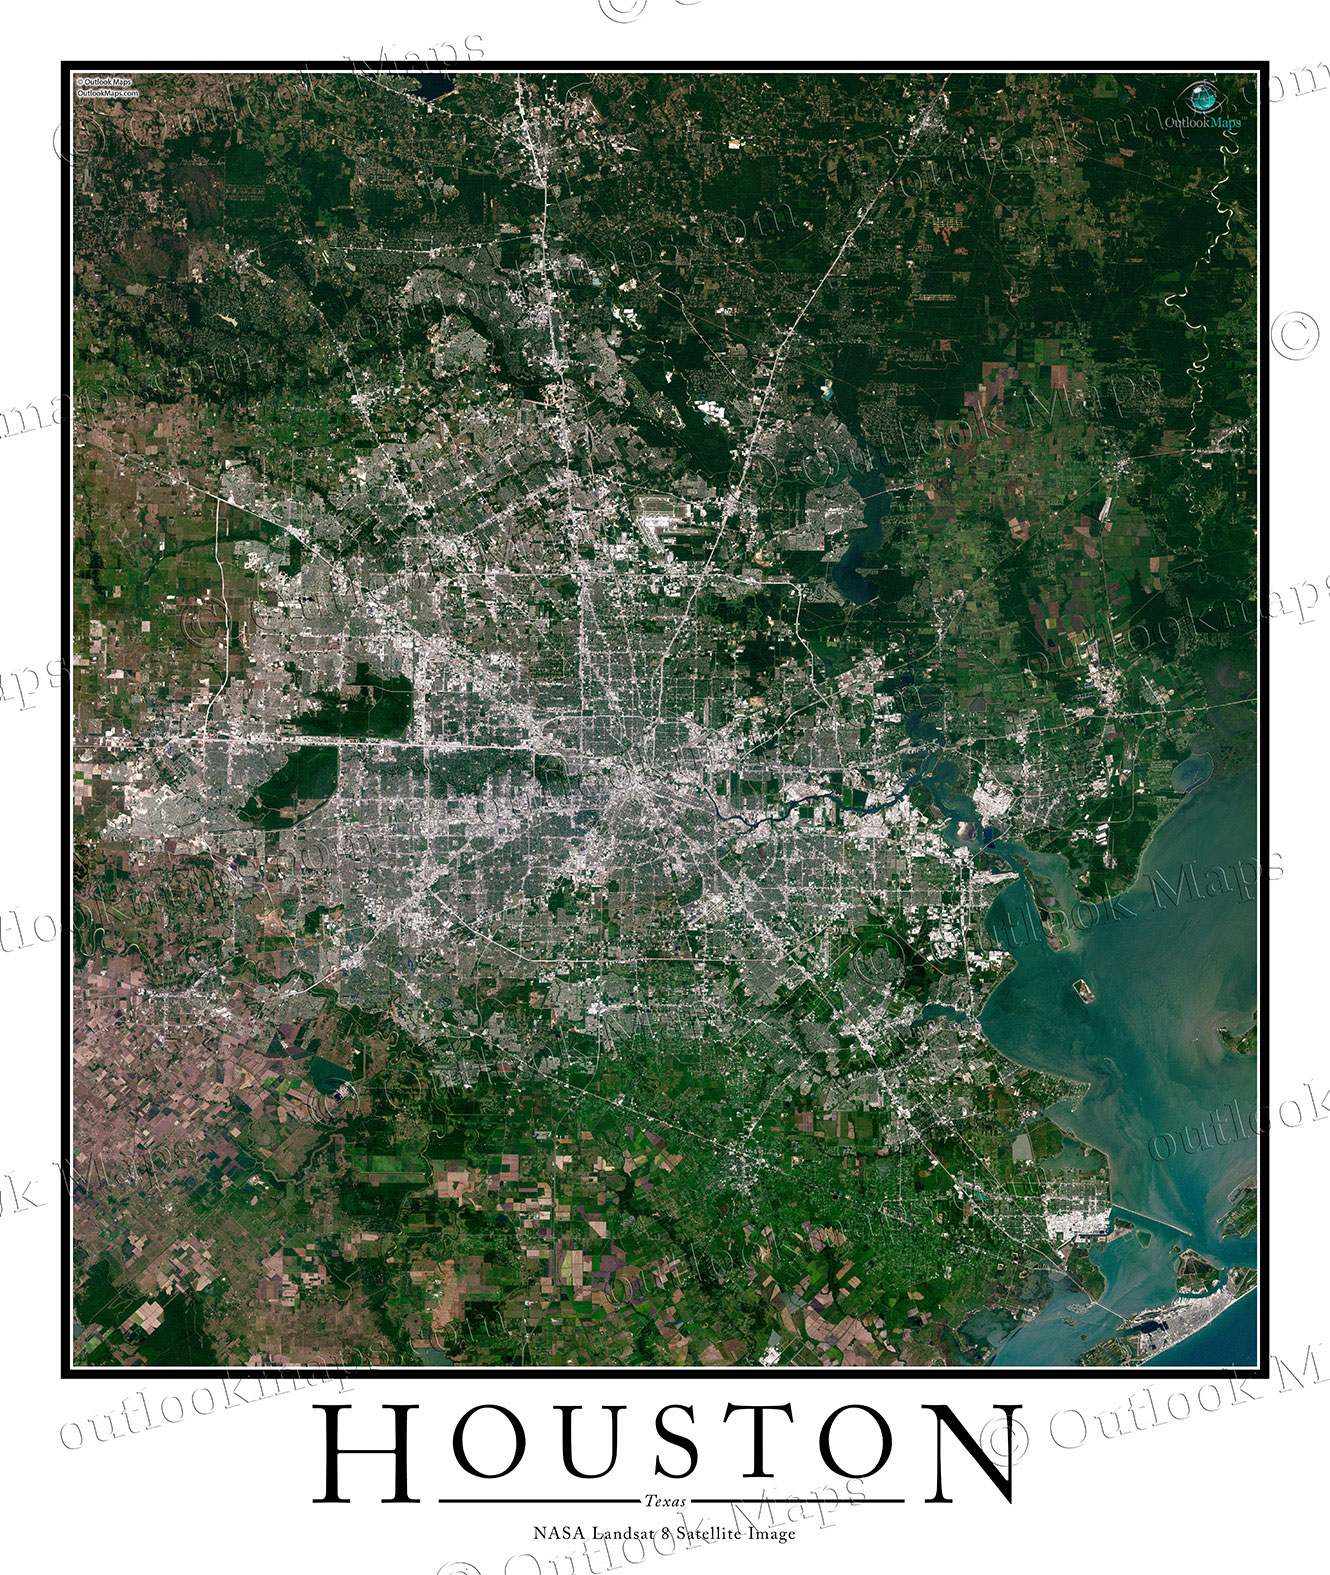 Houston TX Area Satellite Map Print Aerial Image Poster